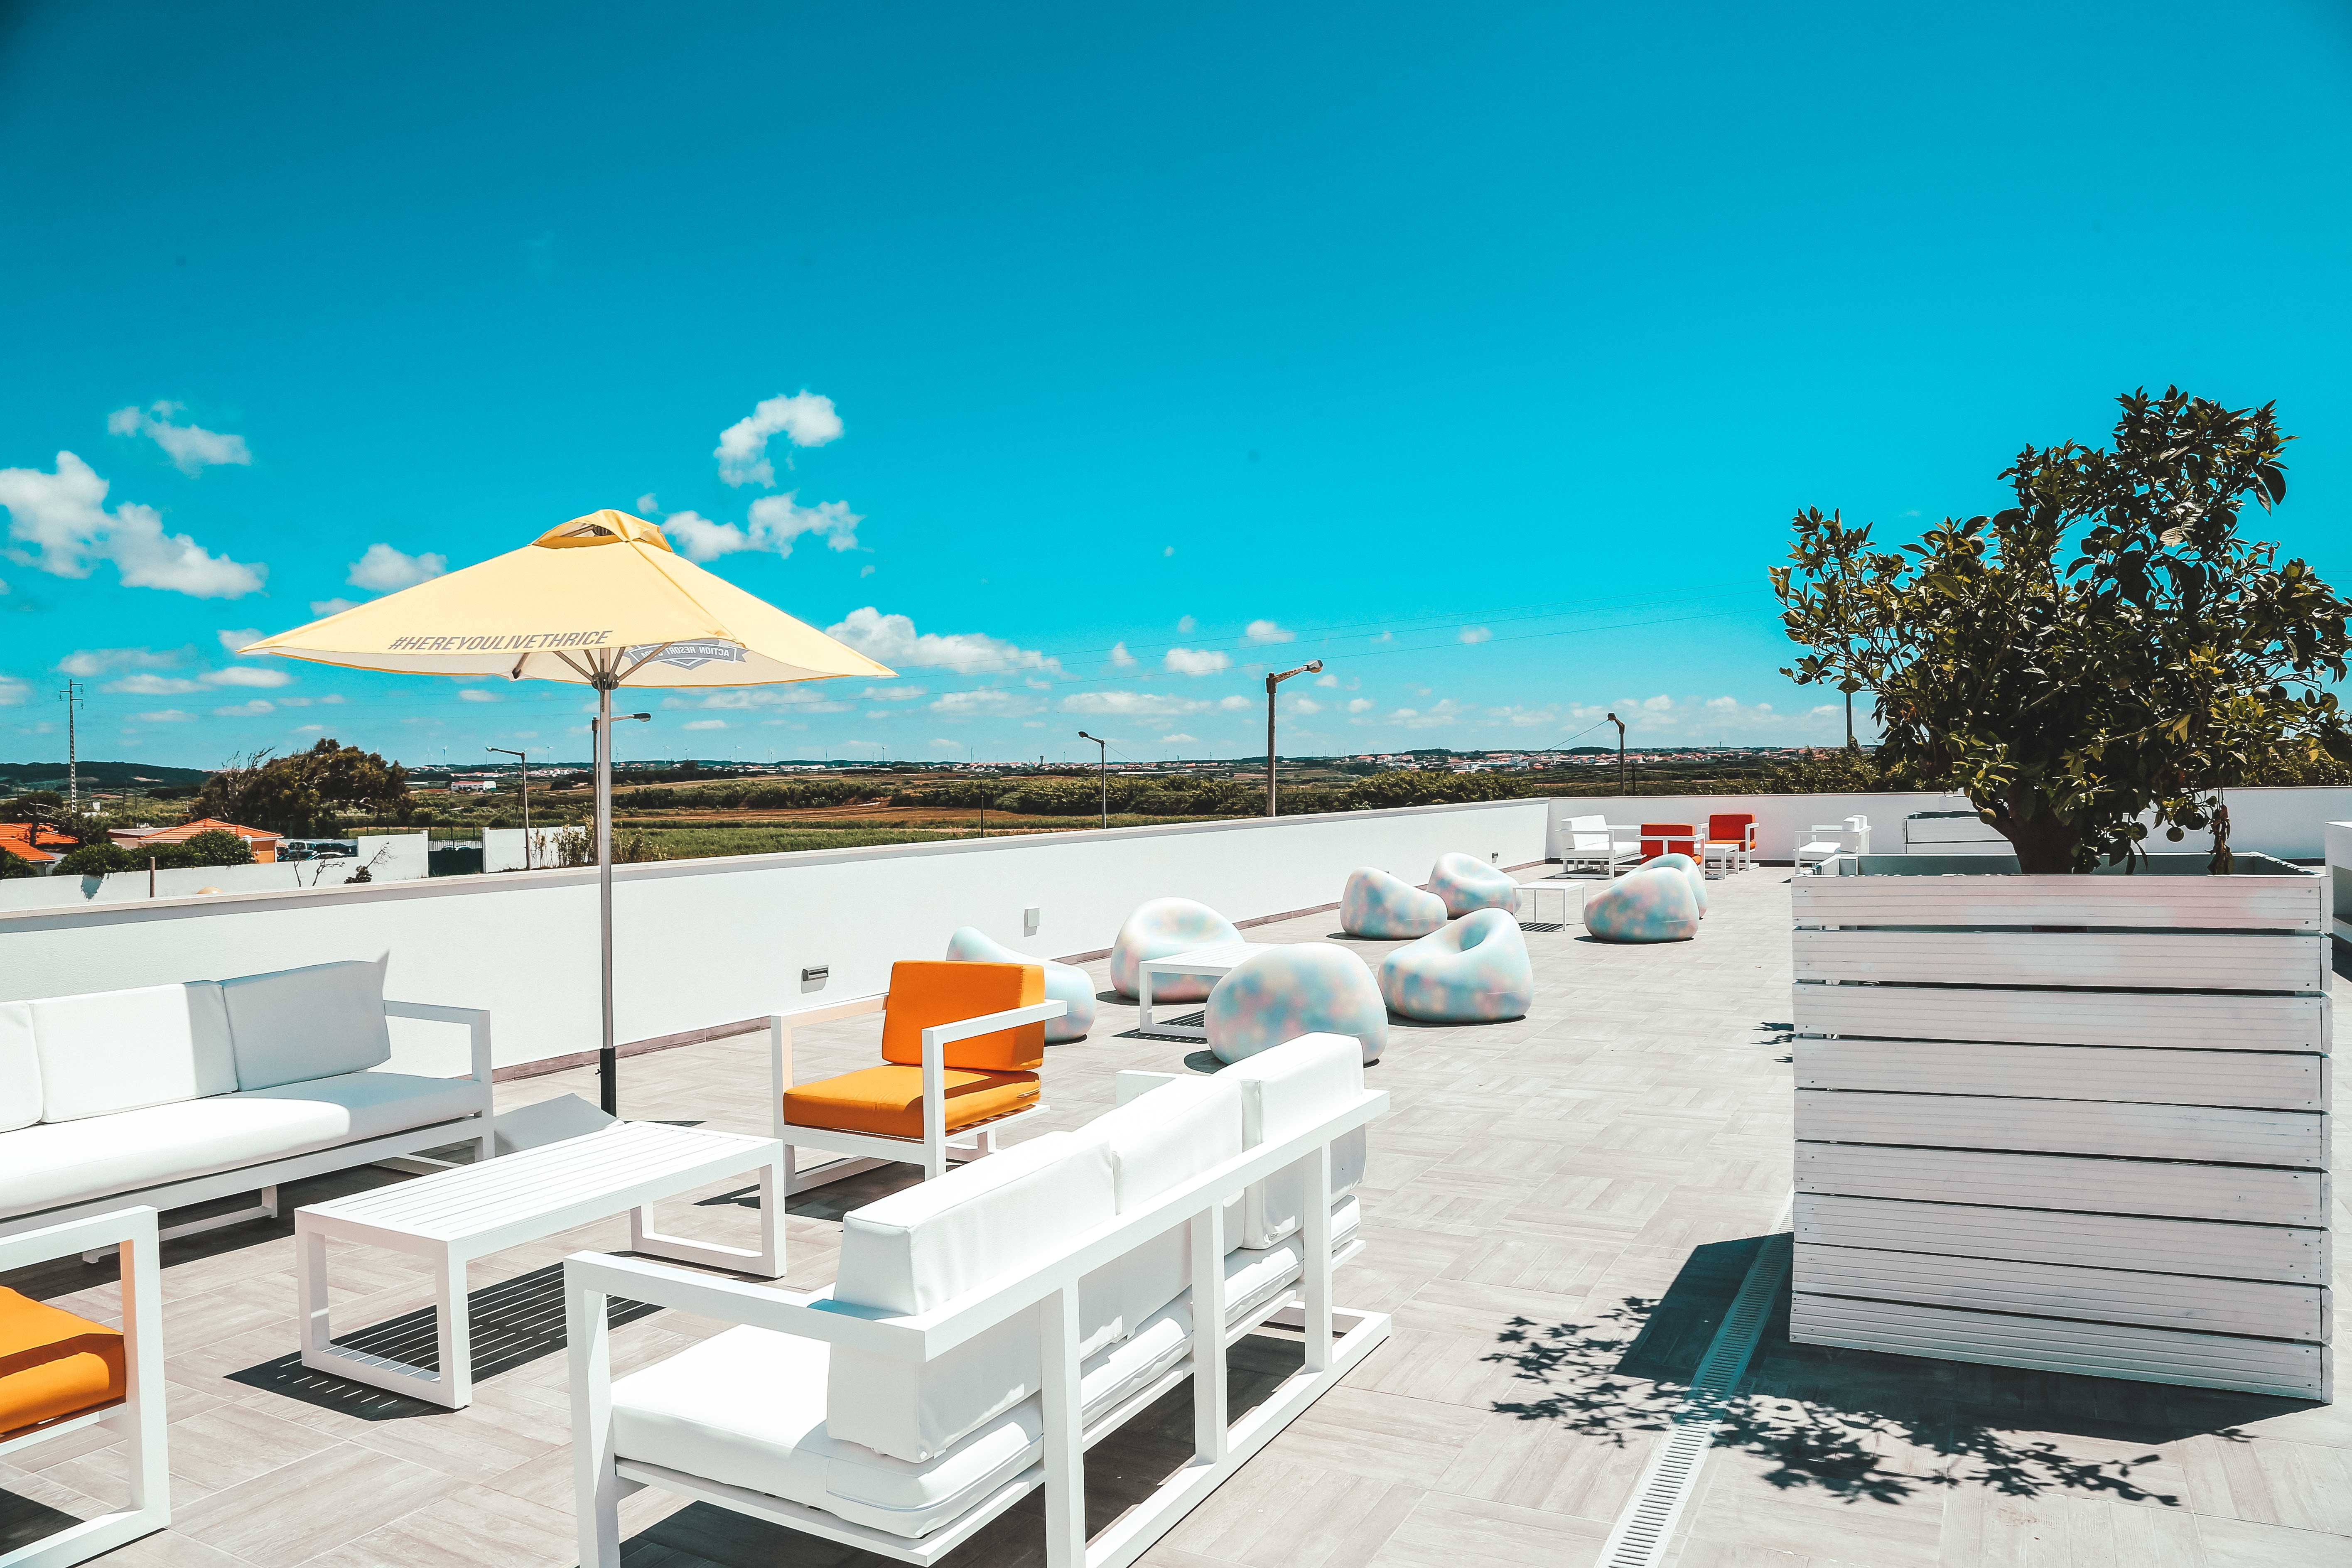 500/Photos/rooftop/hotel-ride-surf-spa-peniche-rooftop-1.jpg